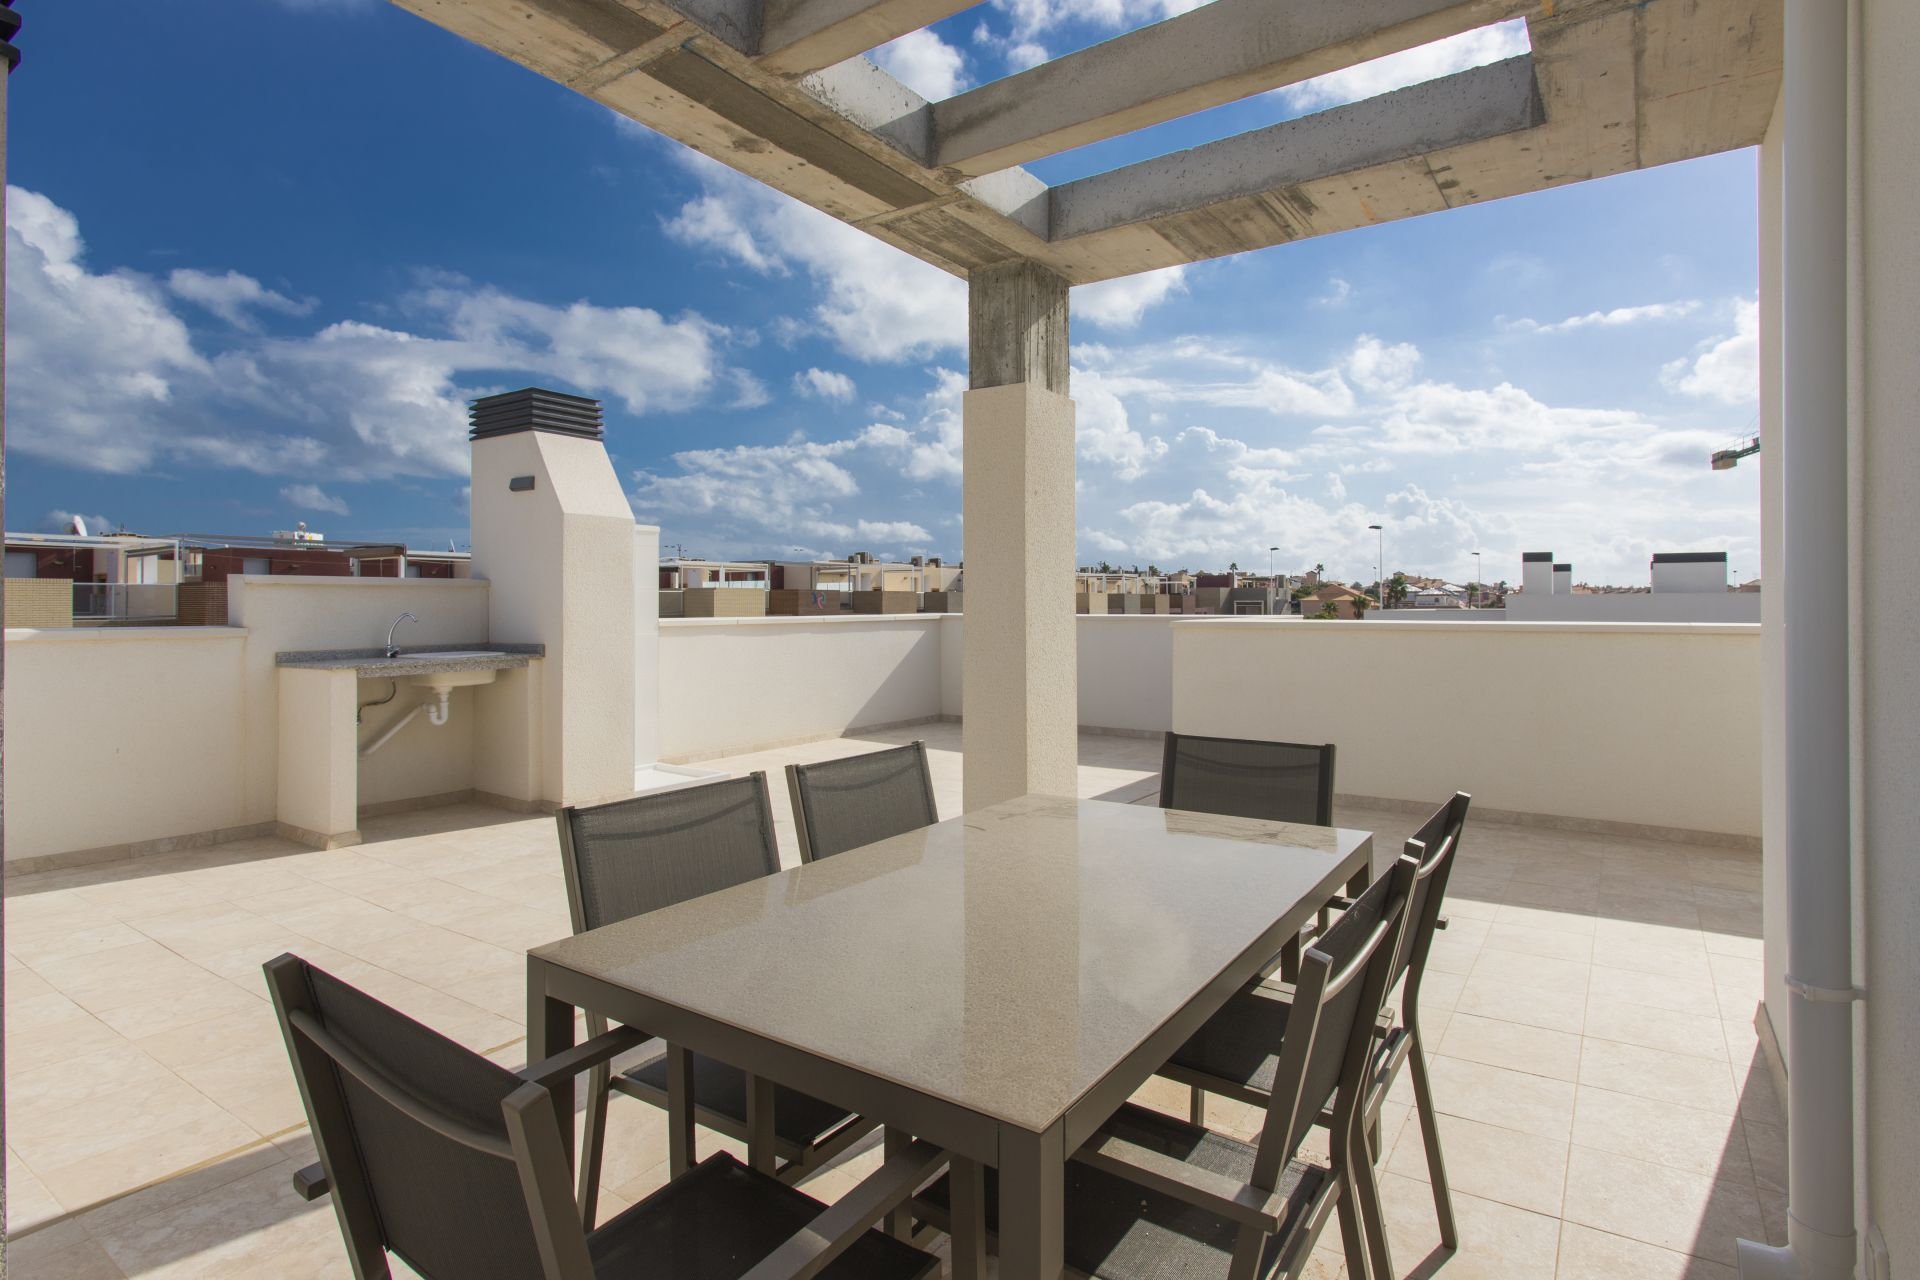 Apartment with 3 bedrooms and 3 bathrooms with garden, Aguas Nuevas. 10